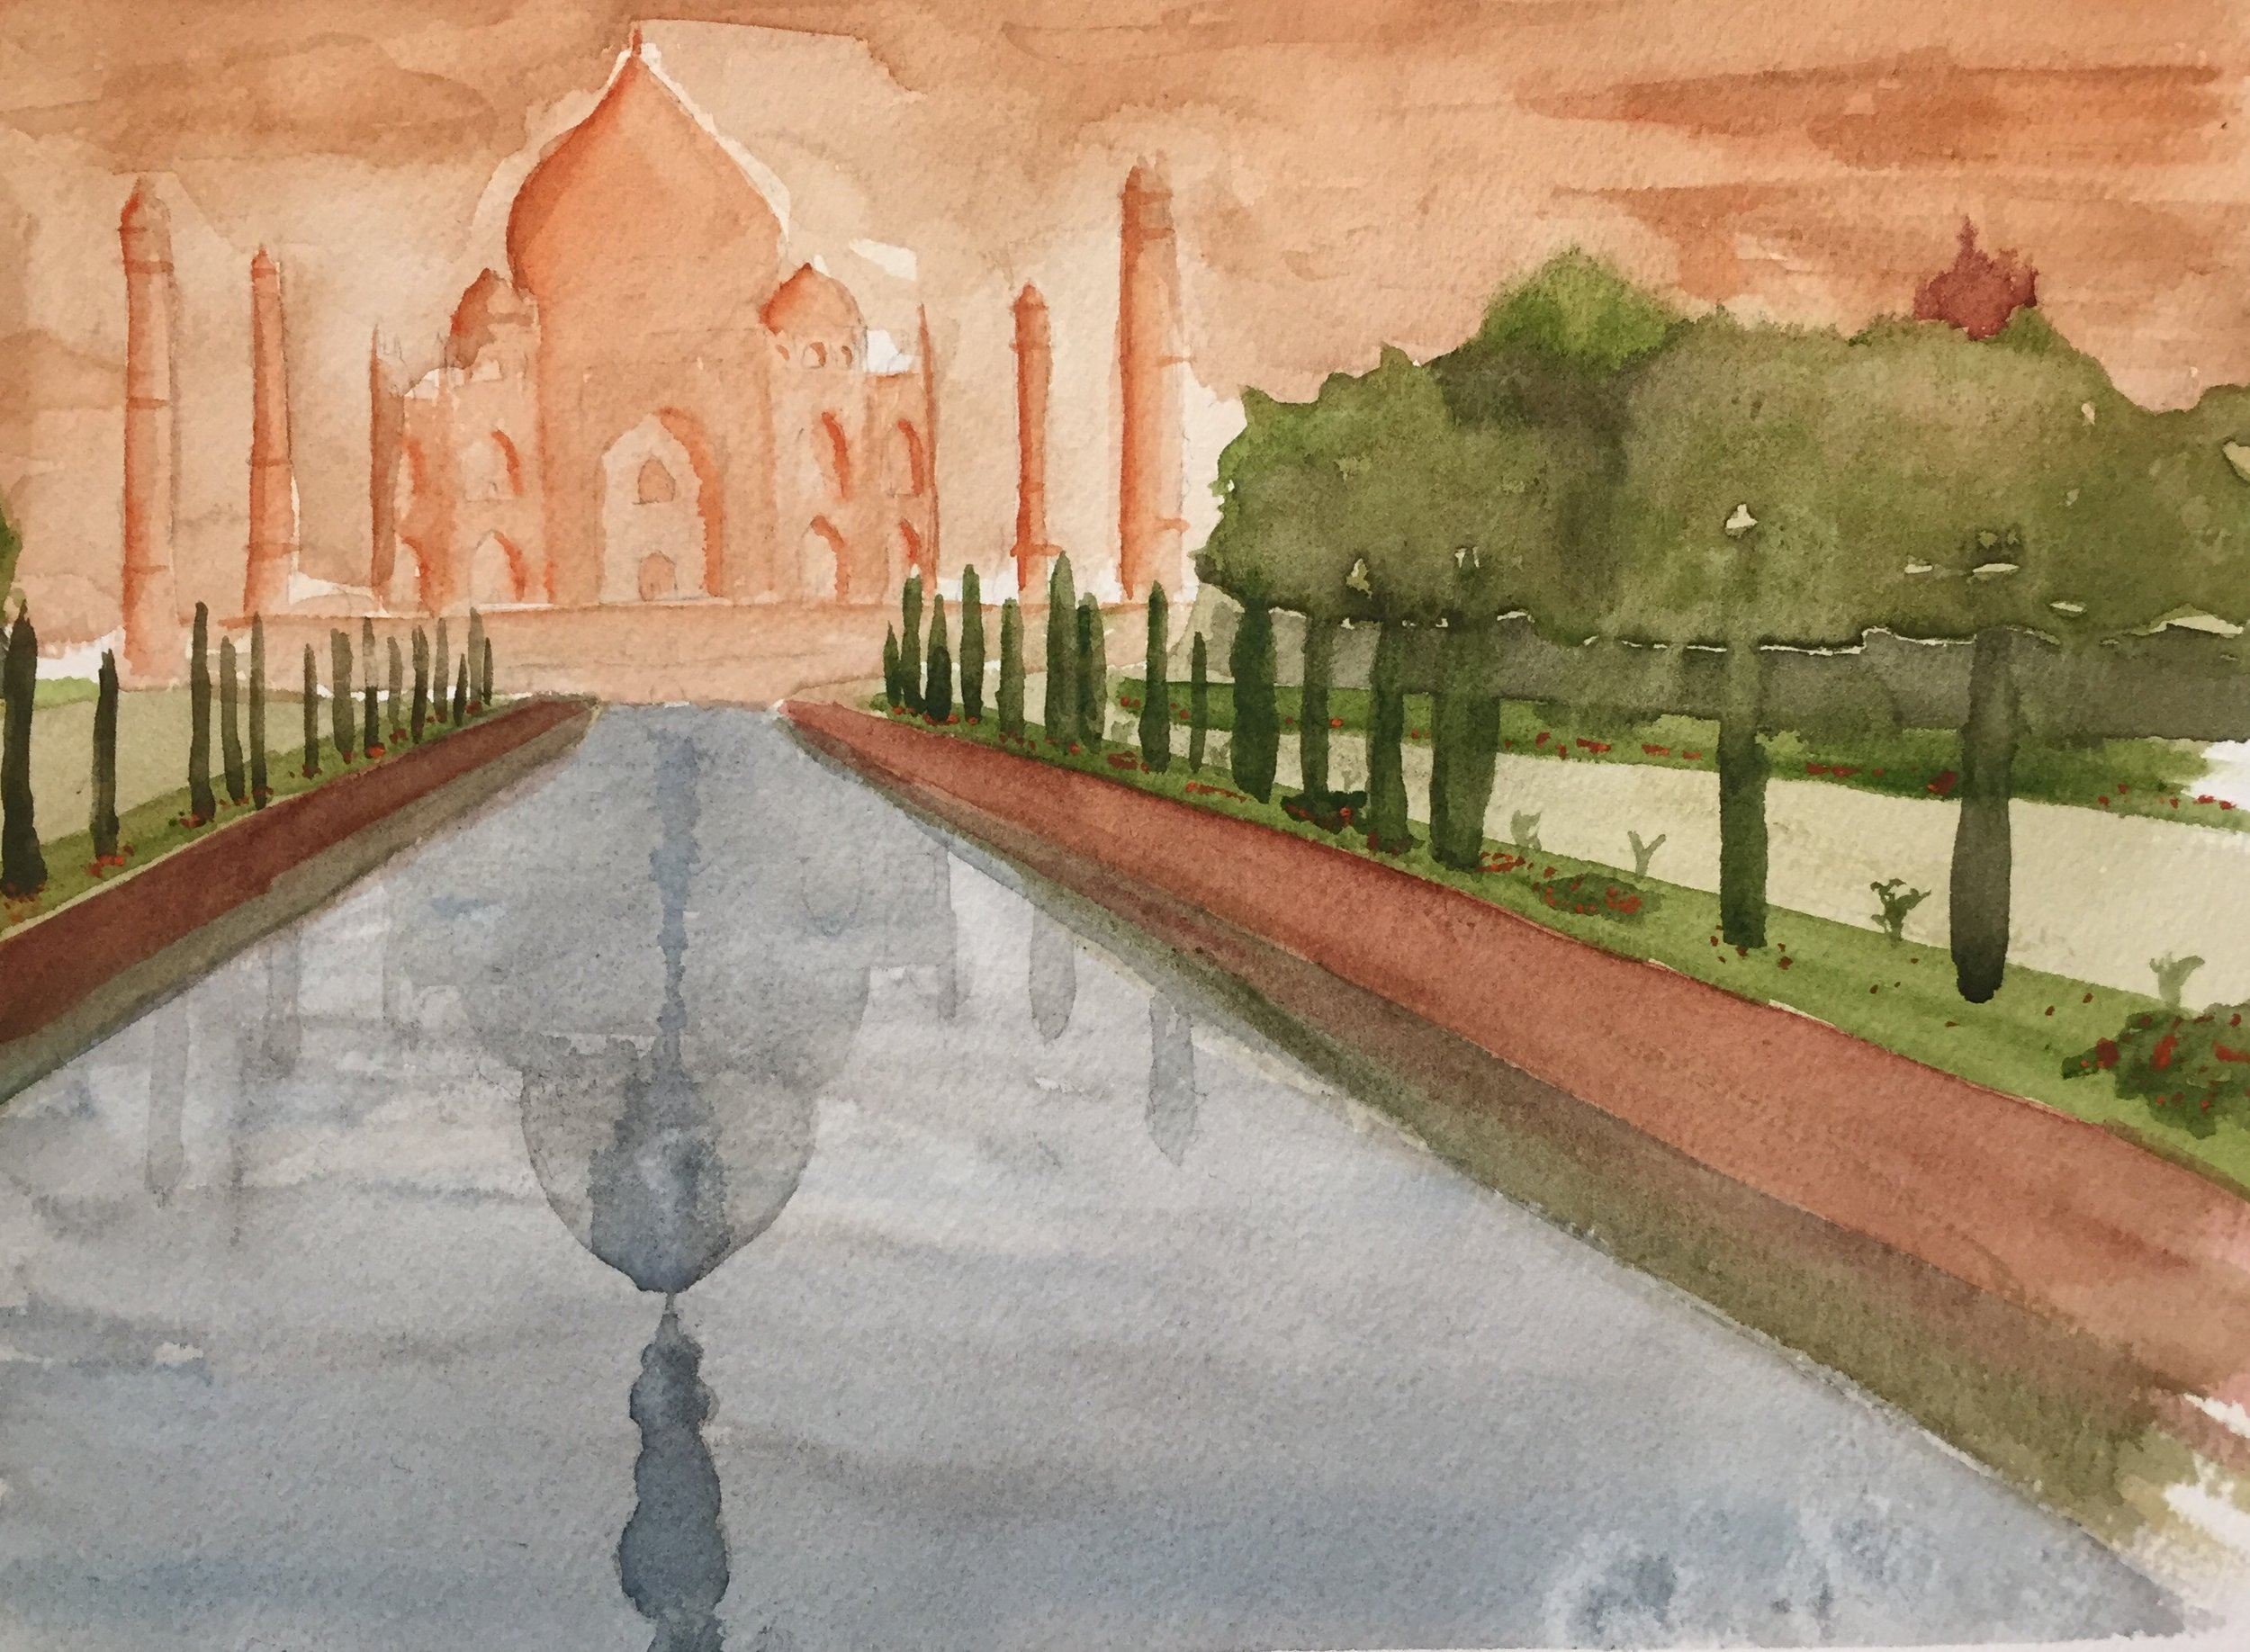 Taj Mahal Gardens Revealing Tomb.  Watercolor on Arches paper.